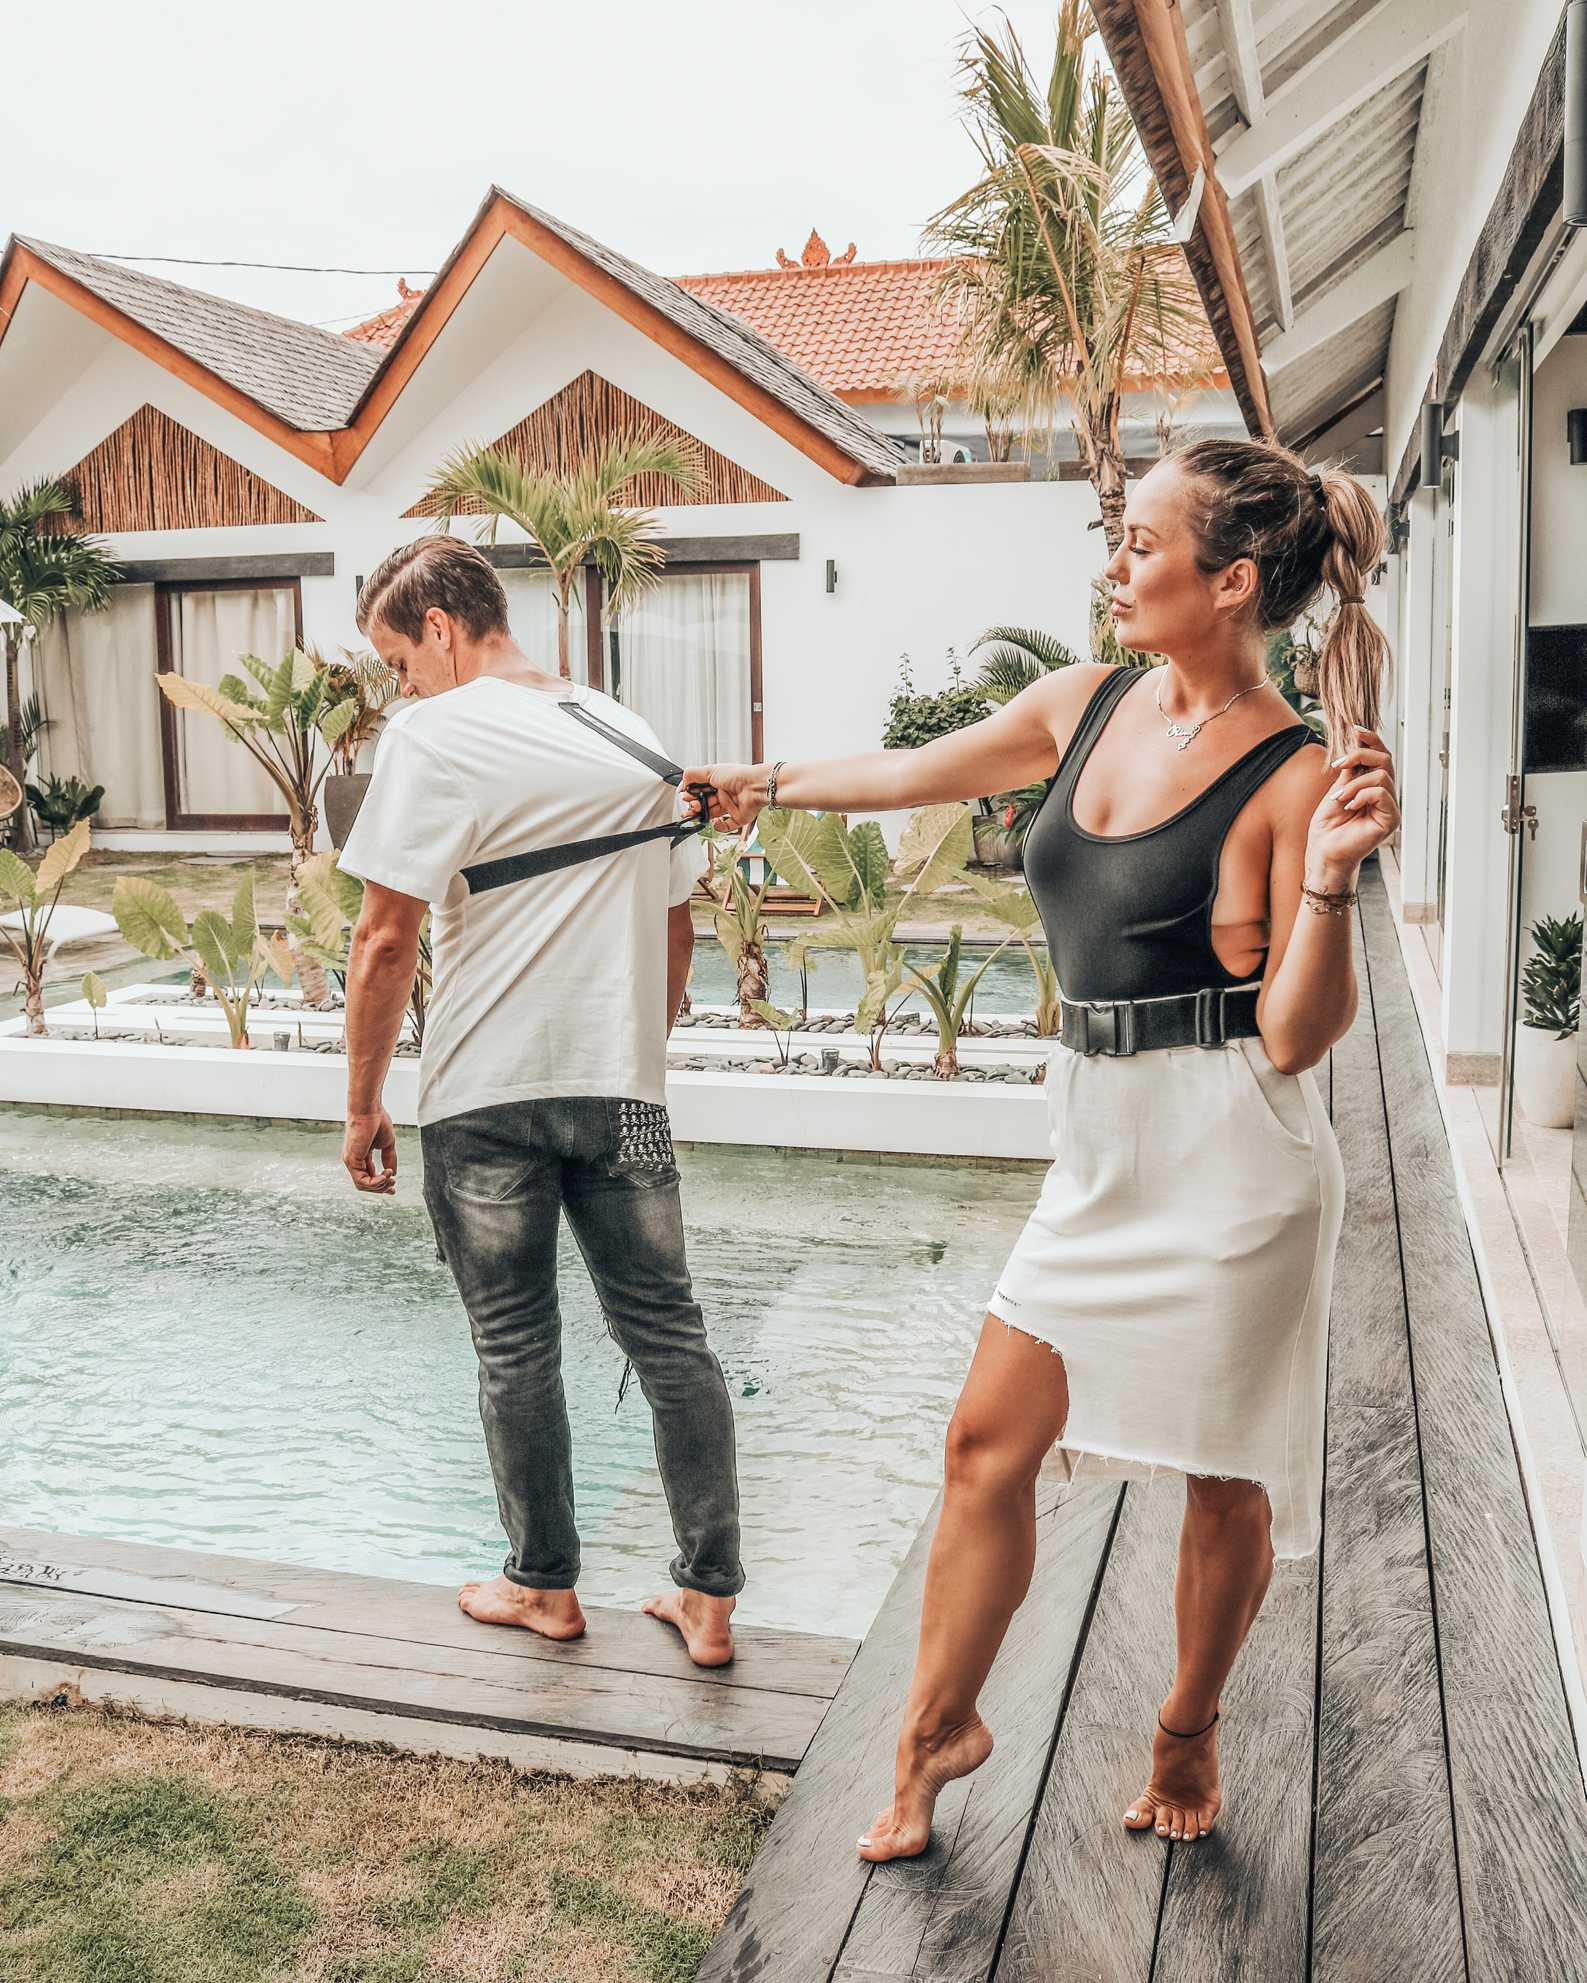 canggu-bali-where-to-sleep.jpg